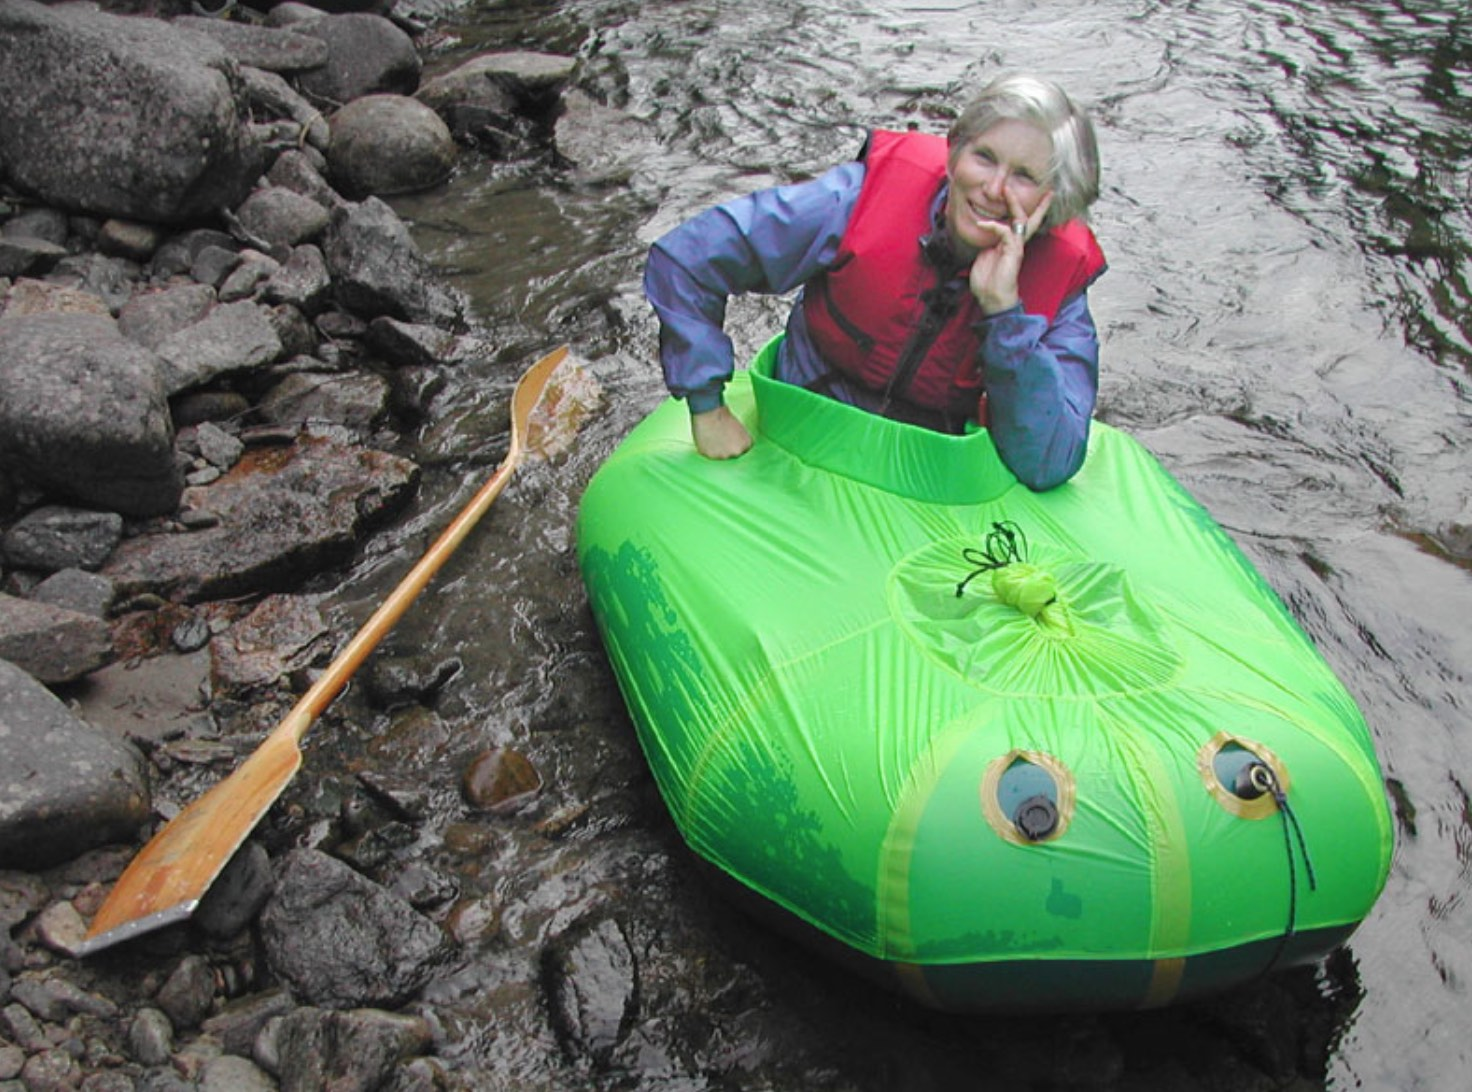 From Toy to Adventure Tool: Alplacka Raft Floats Into Mainstream